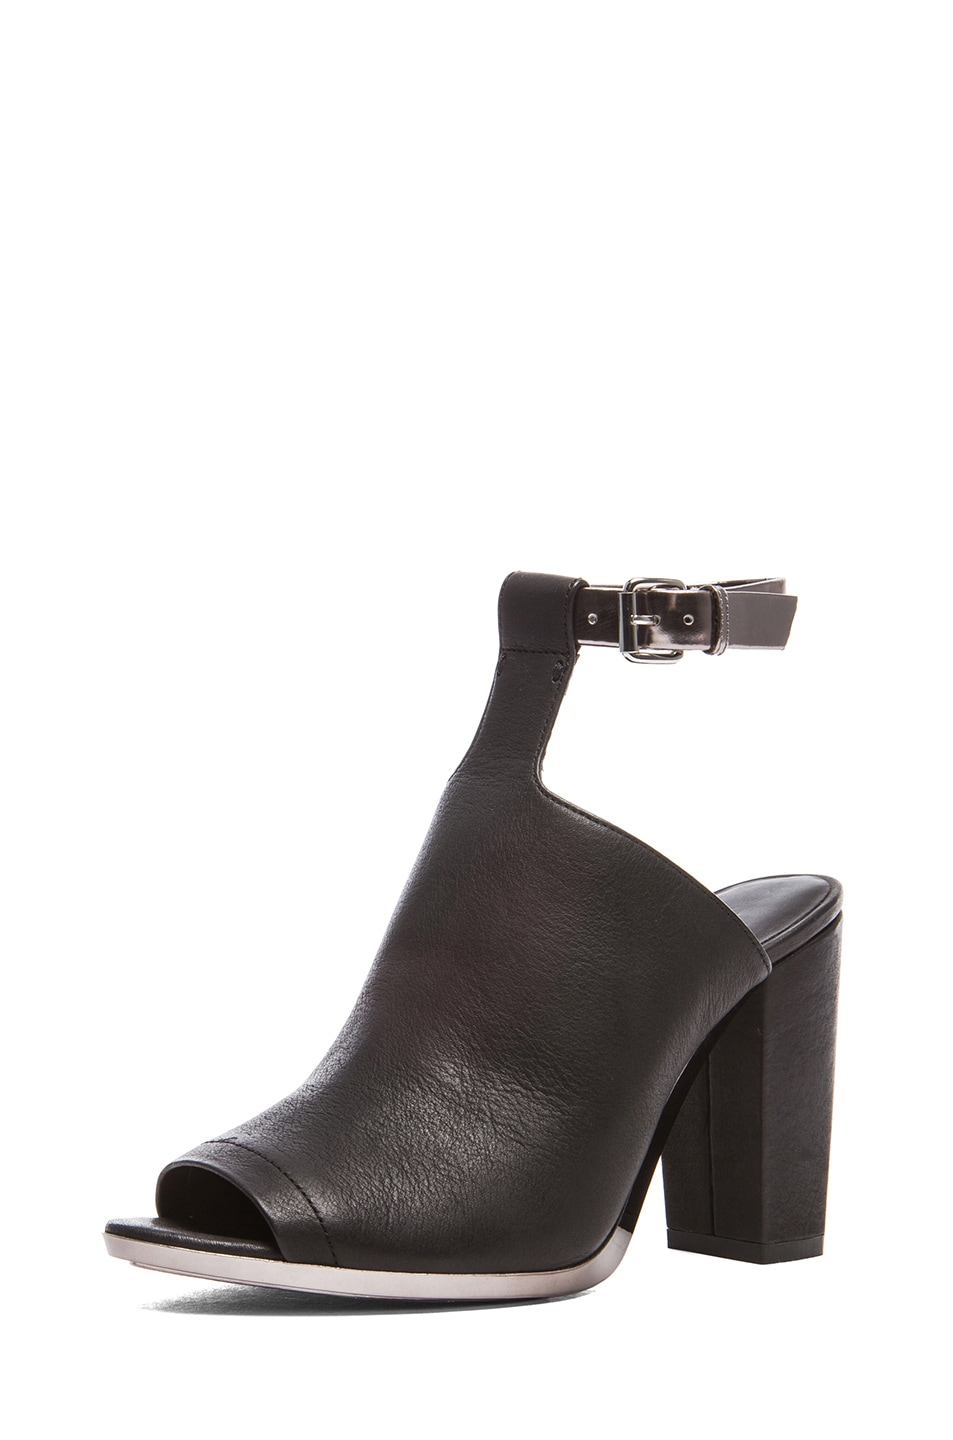 Image 2 of 3.1 phillip lim Vincent Leather Ankle Strap Mules in Black & Gunmetal